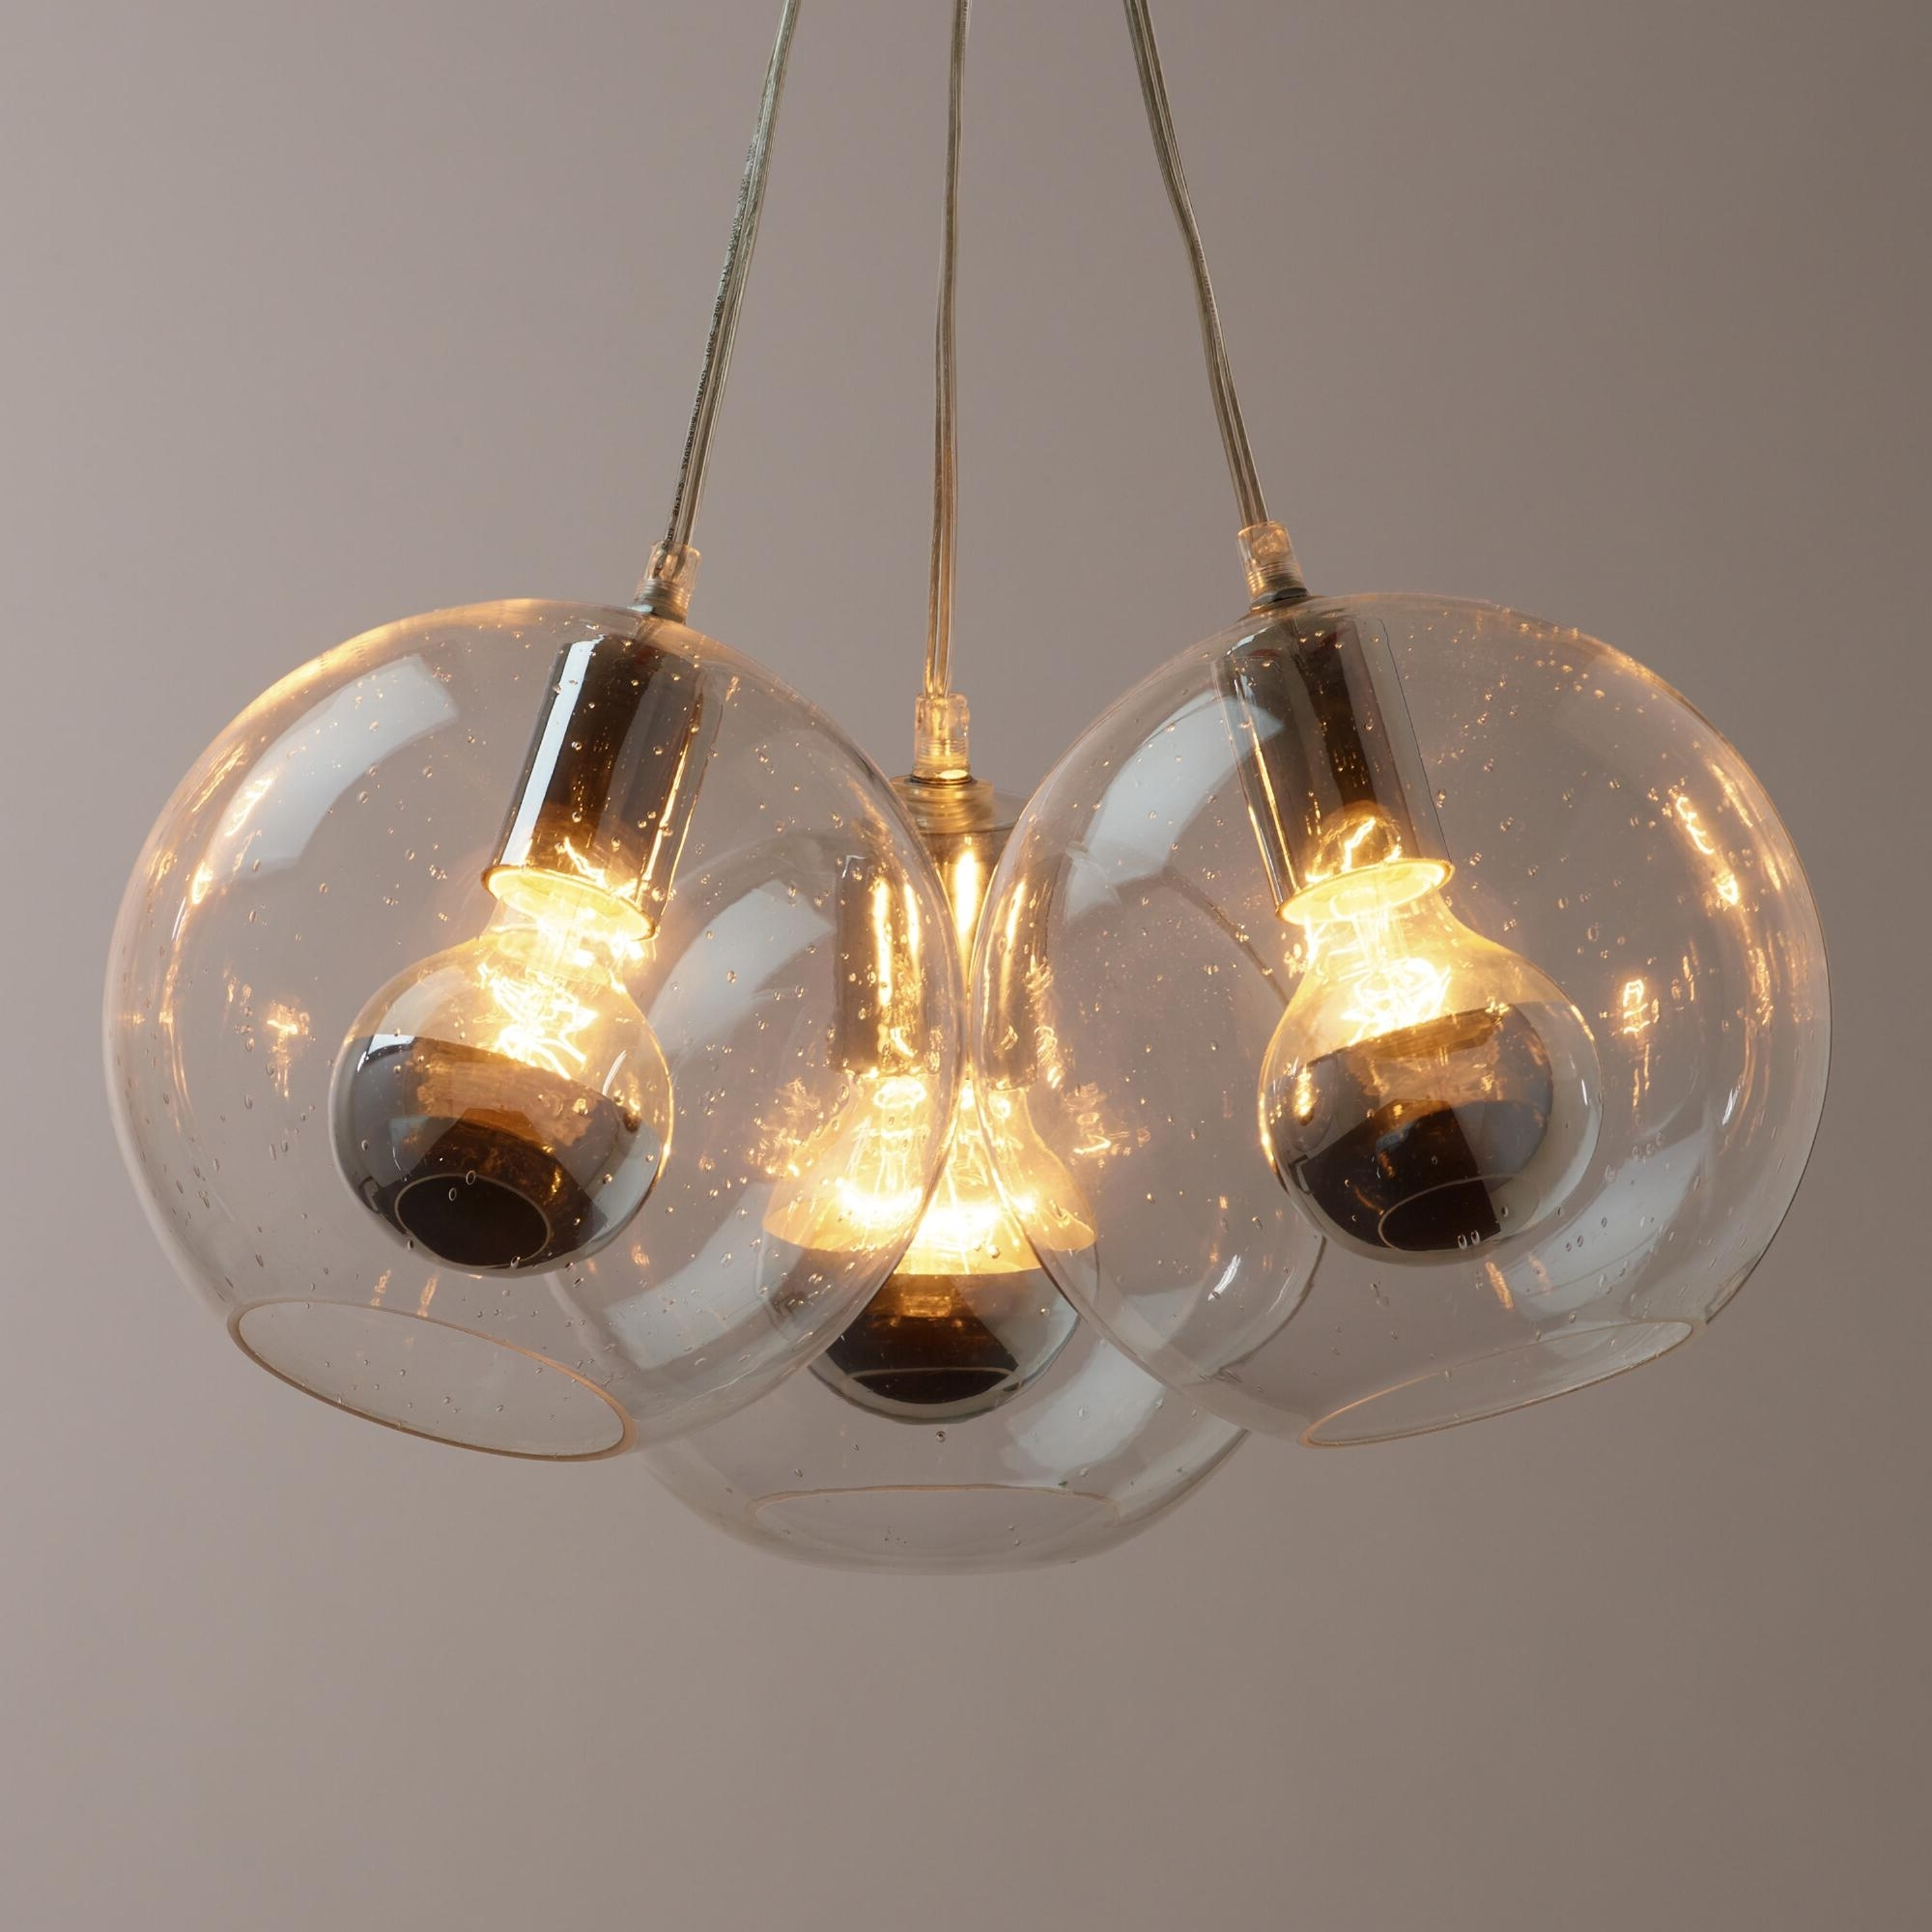 Chrome And Glass Chandeliers With Regard To Fashionable Light : Fascinating Seeded Glass Chrome Tip Bulb Cluster Pendant (View 15 of 20)